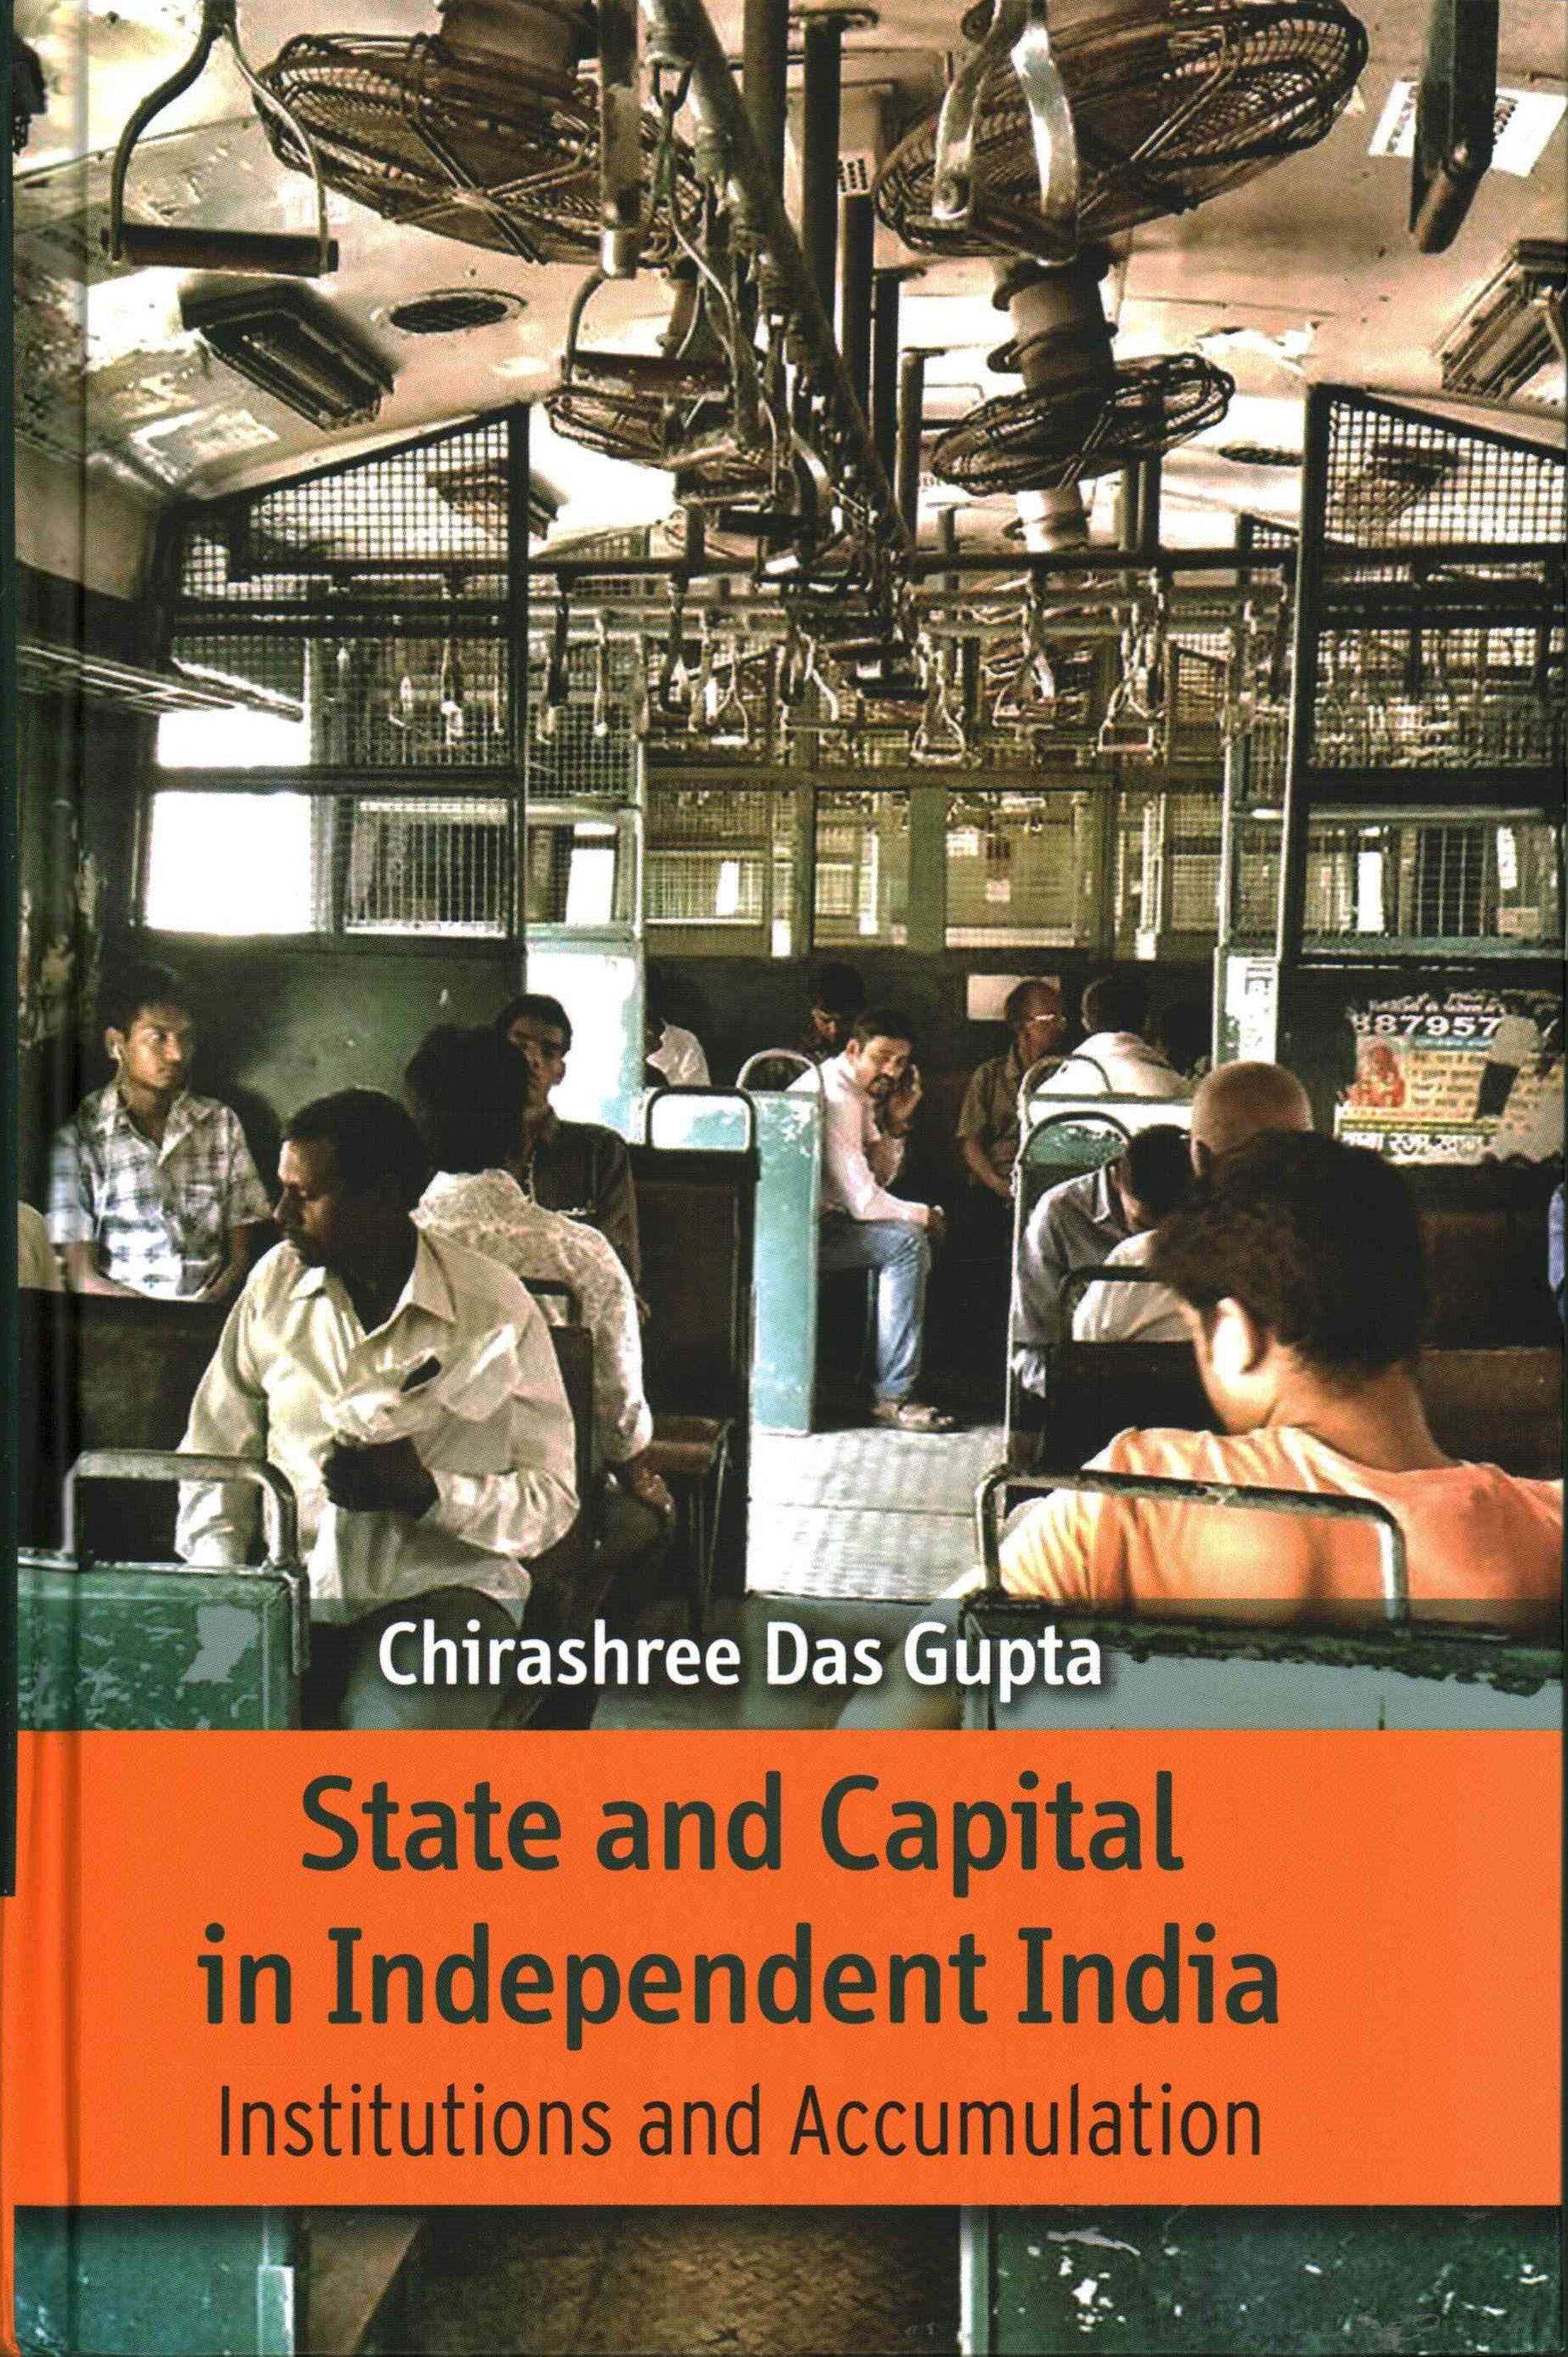 State and Capital in Independent India